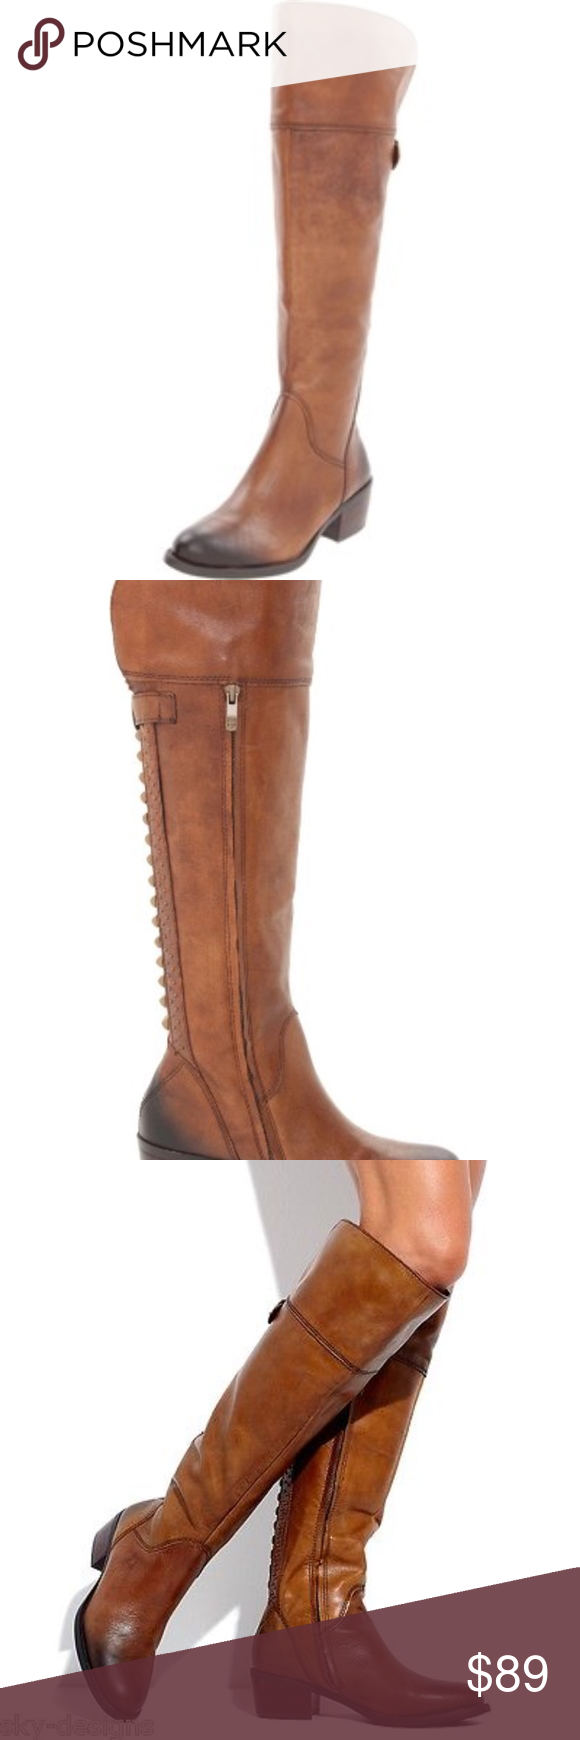 92aa033f359 Vince Camuto Camel Bollo Knee-High Leather Boot The Bollo is a round toe  tall